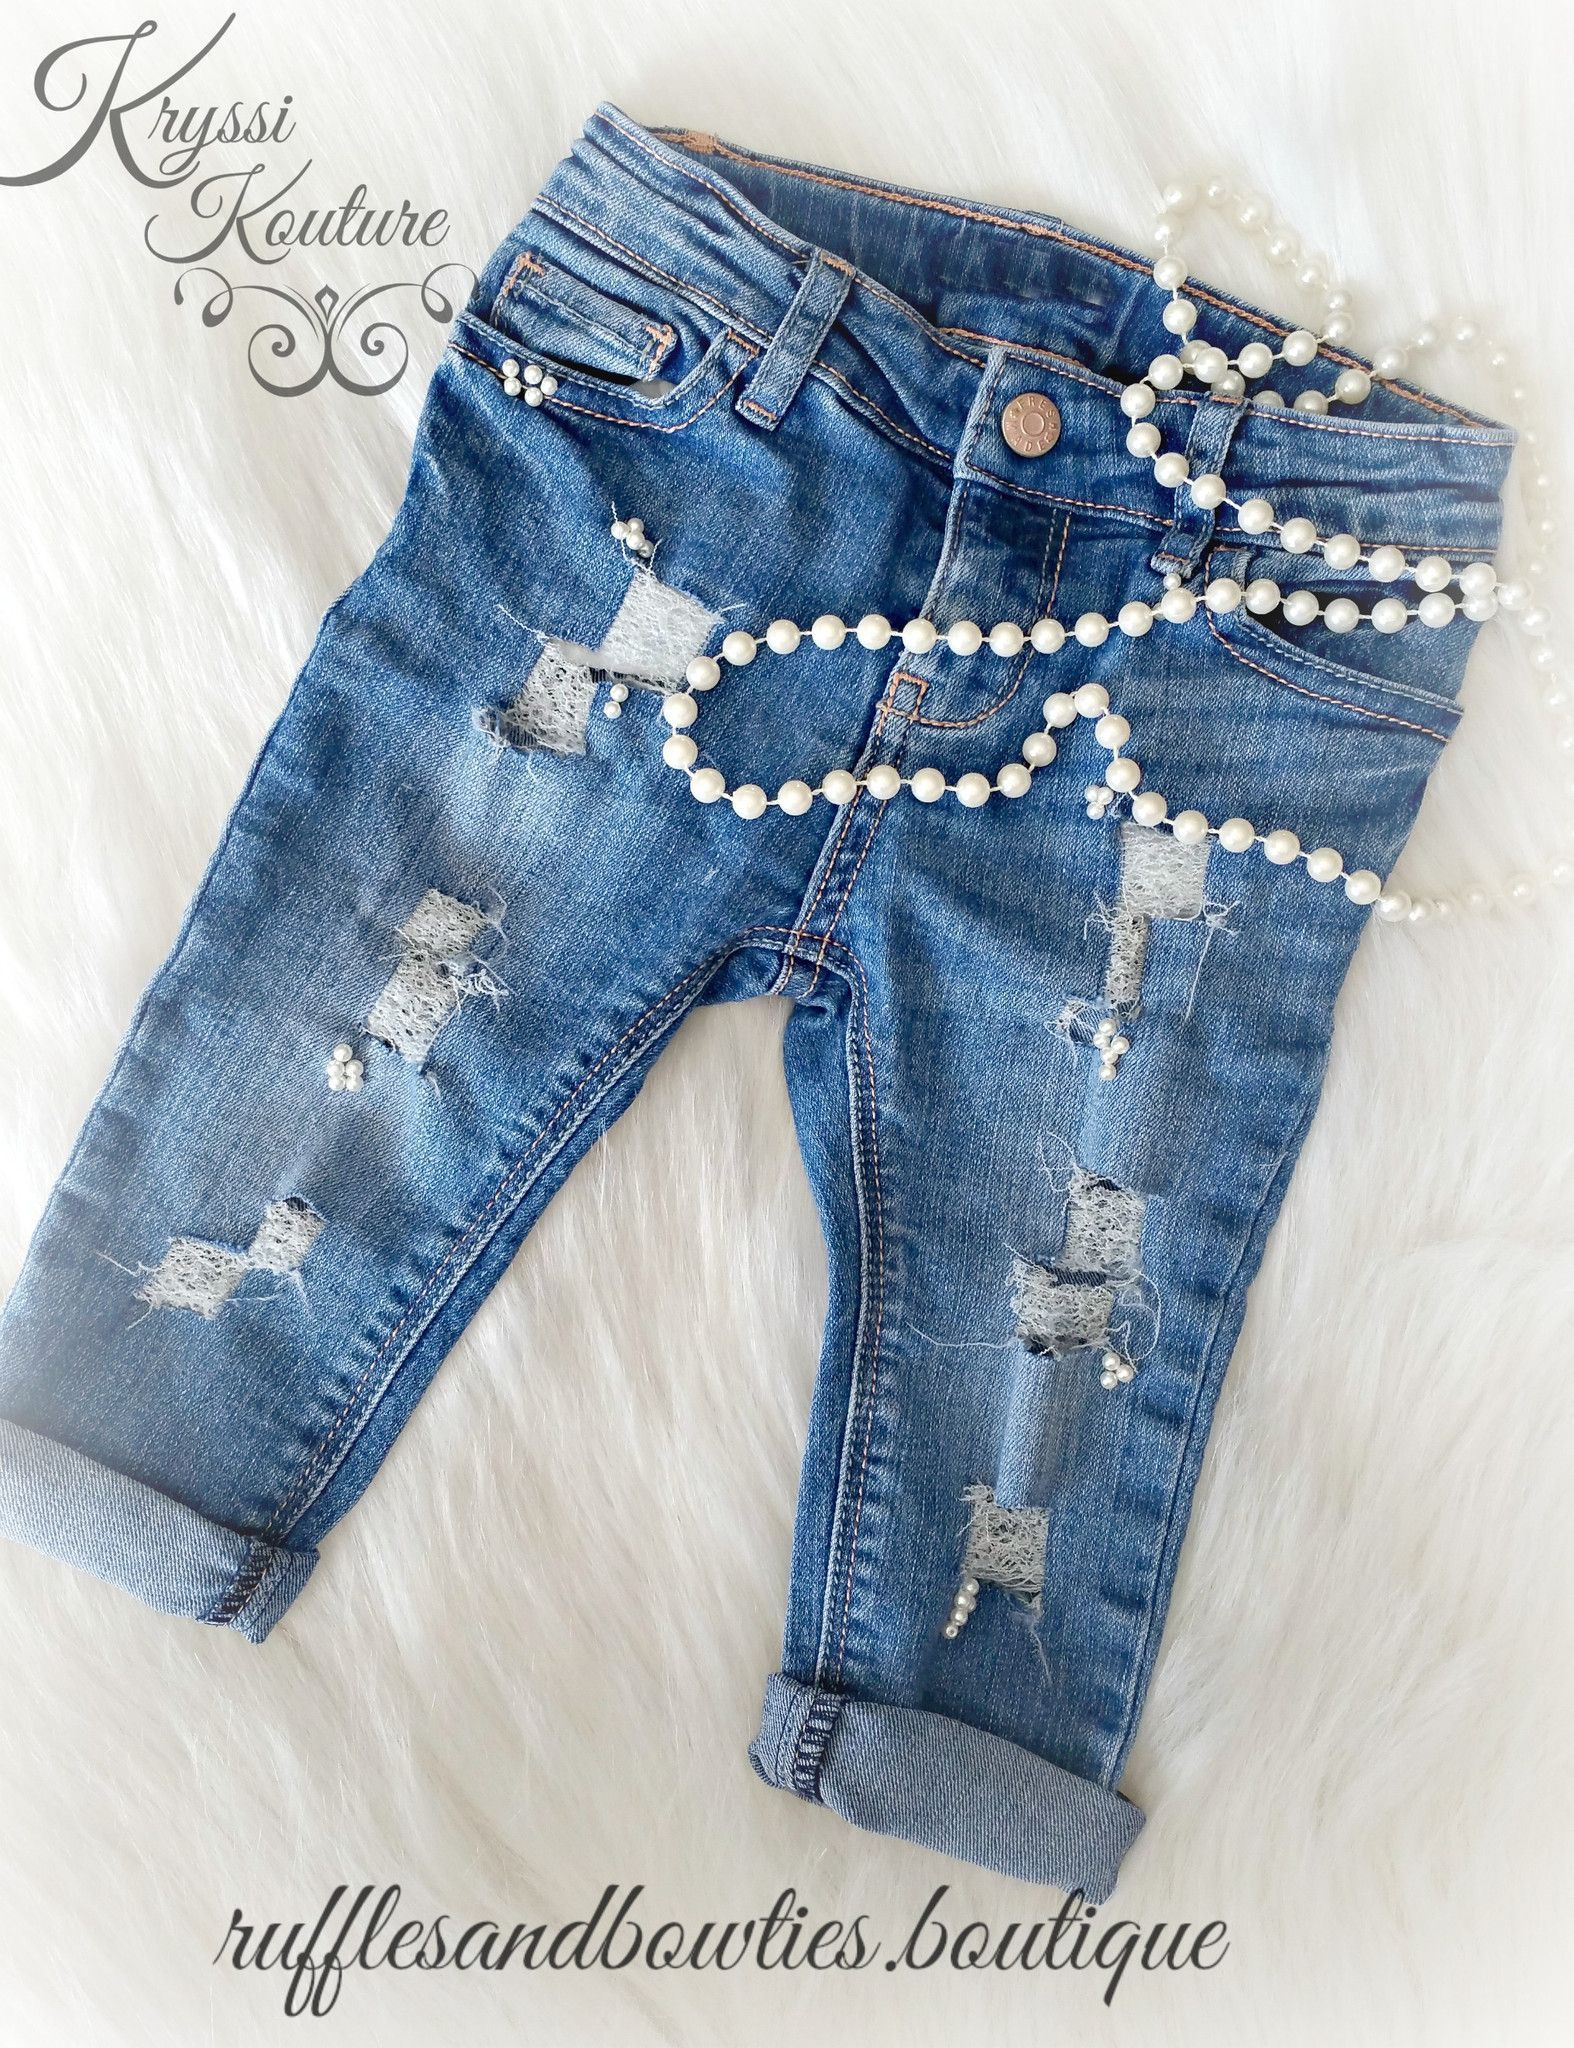 5b2697d99 Original Home of The Kryssi Kouture Distressed Pearl Jeans Our custom  distressed…